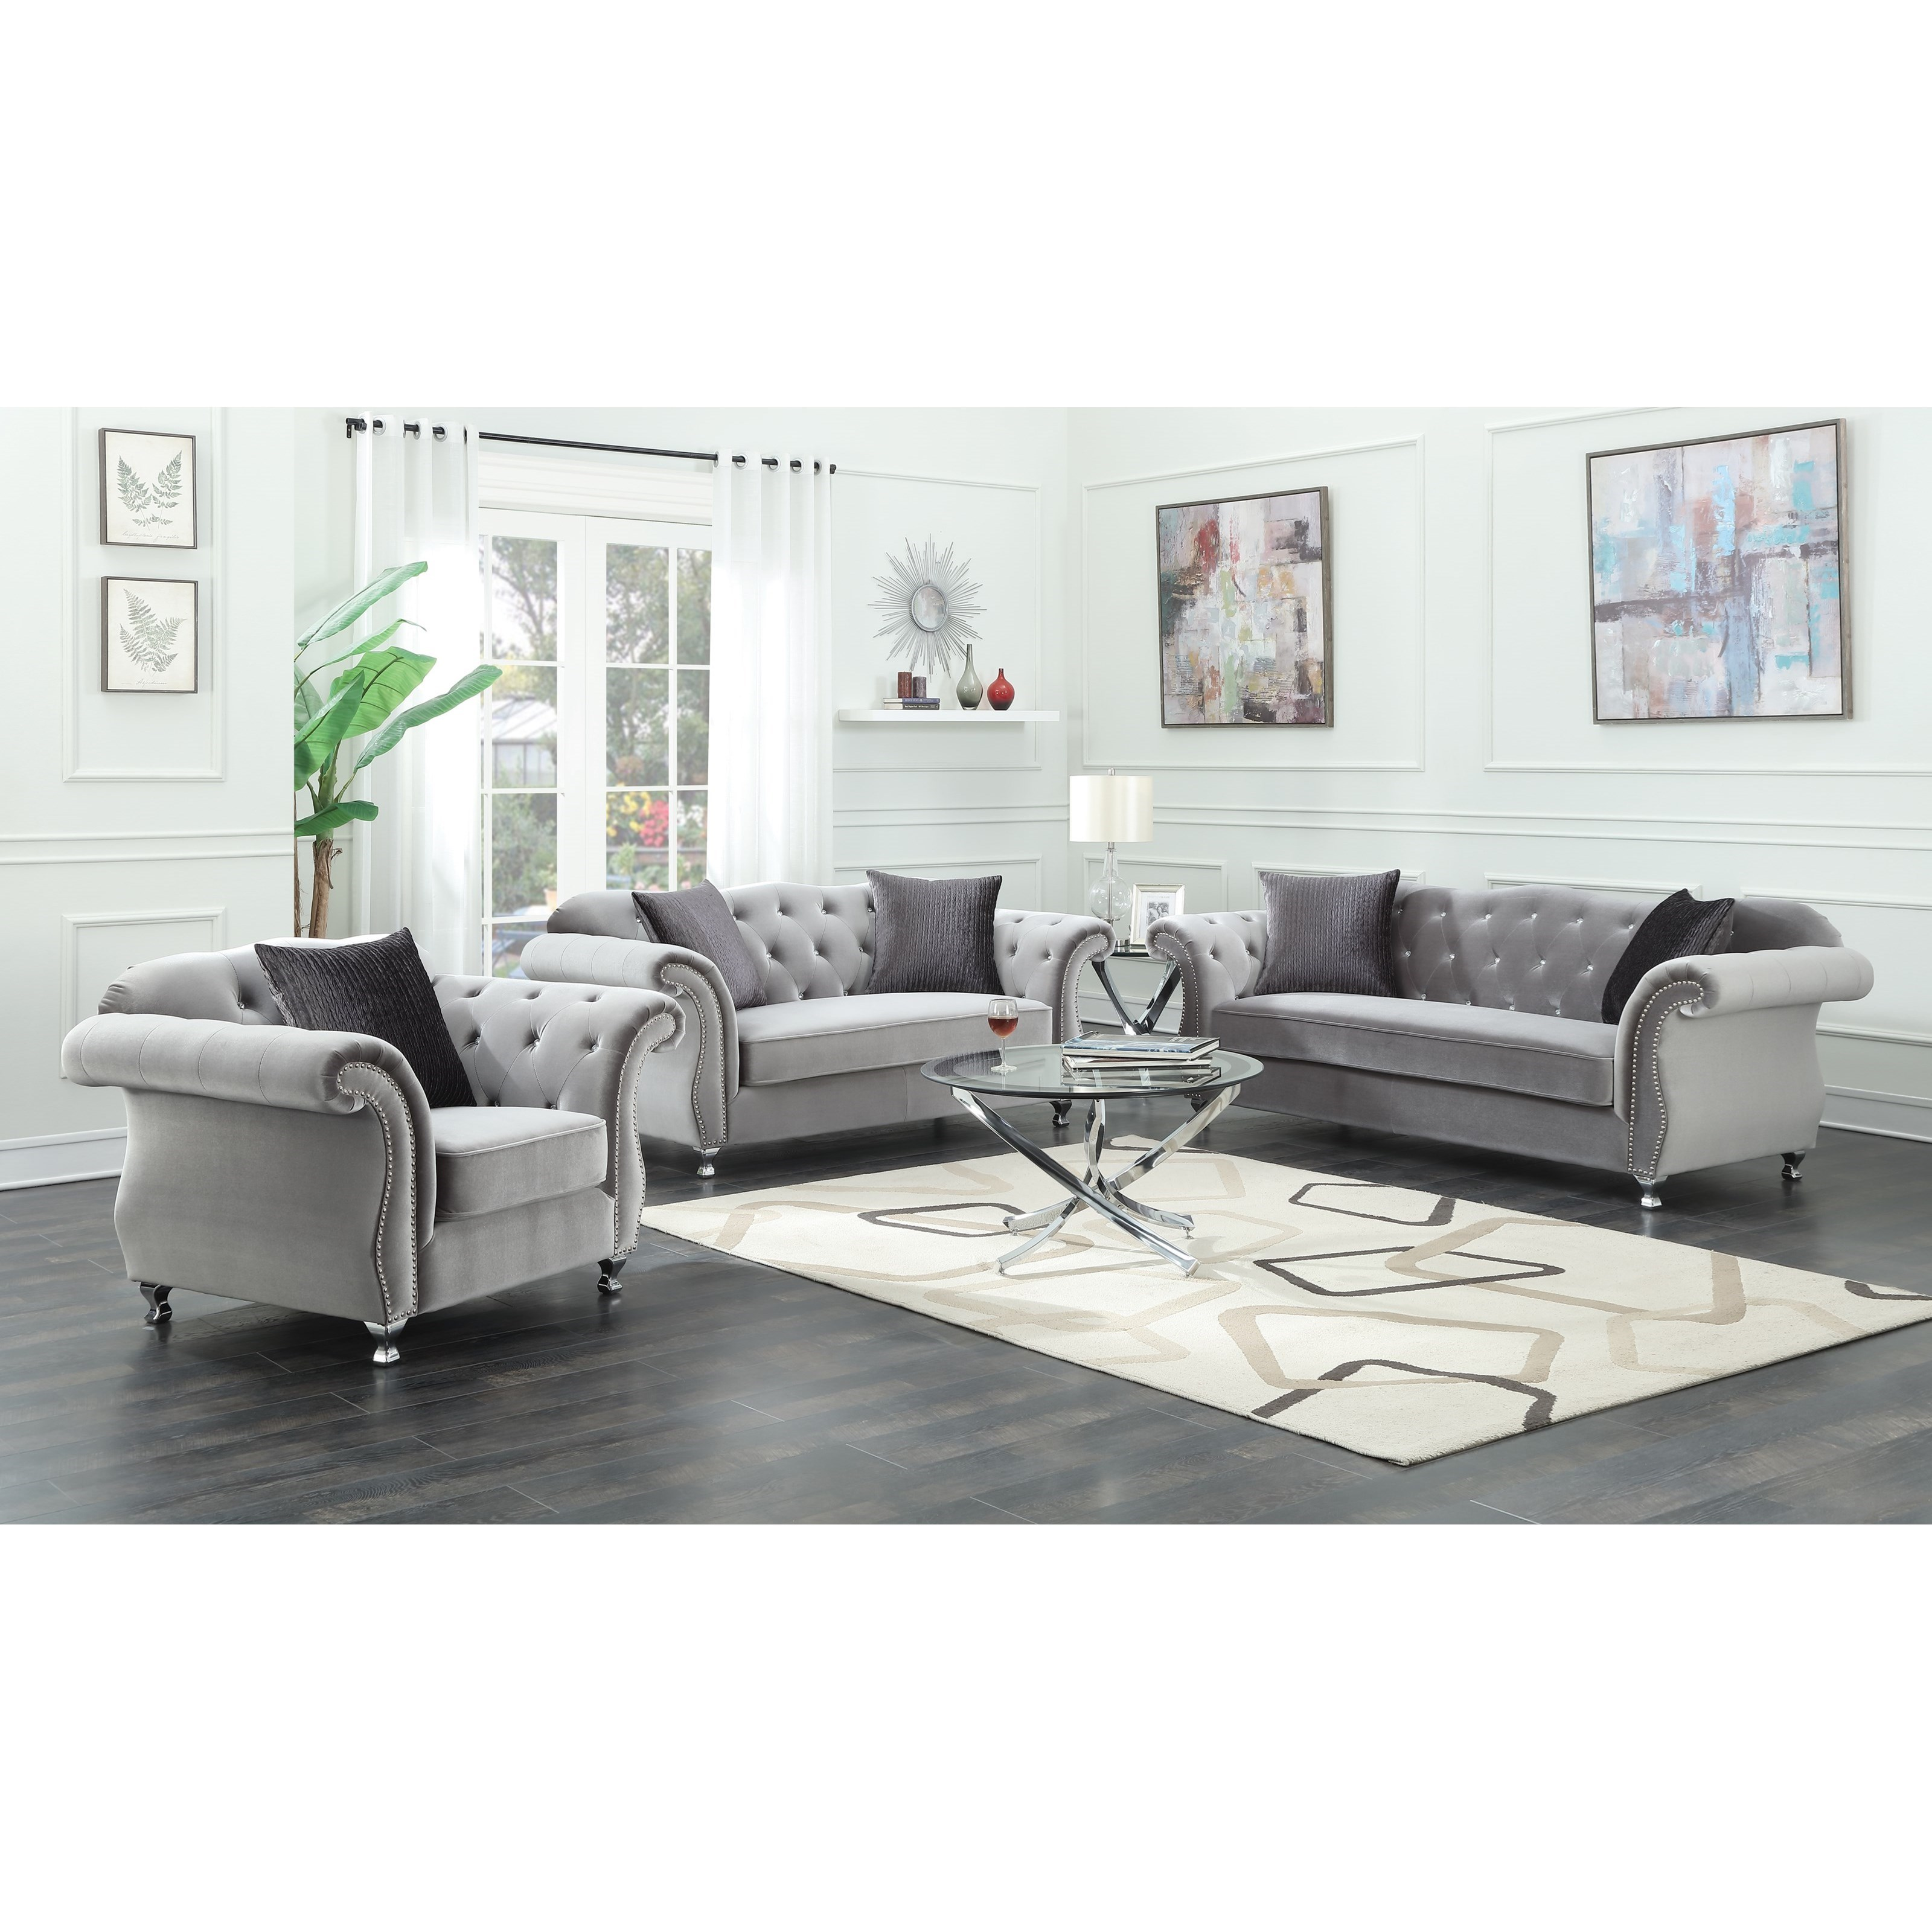 Frostine Stationary Living Room Group by Coaster at Furniture Superstore - Rochester, MN